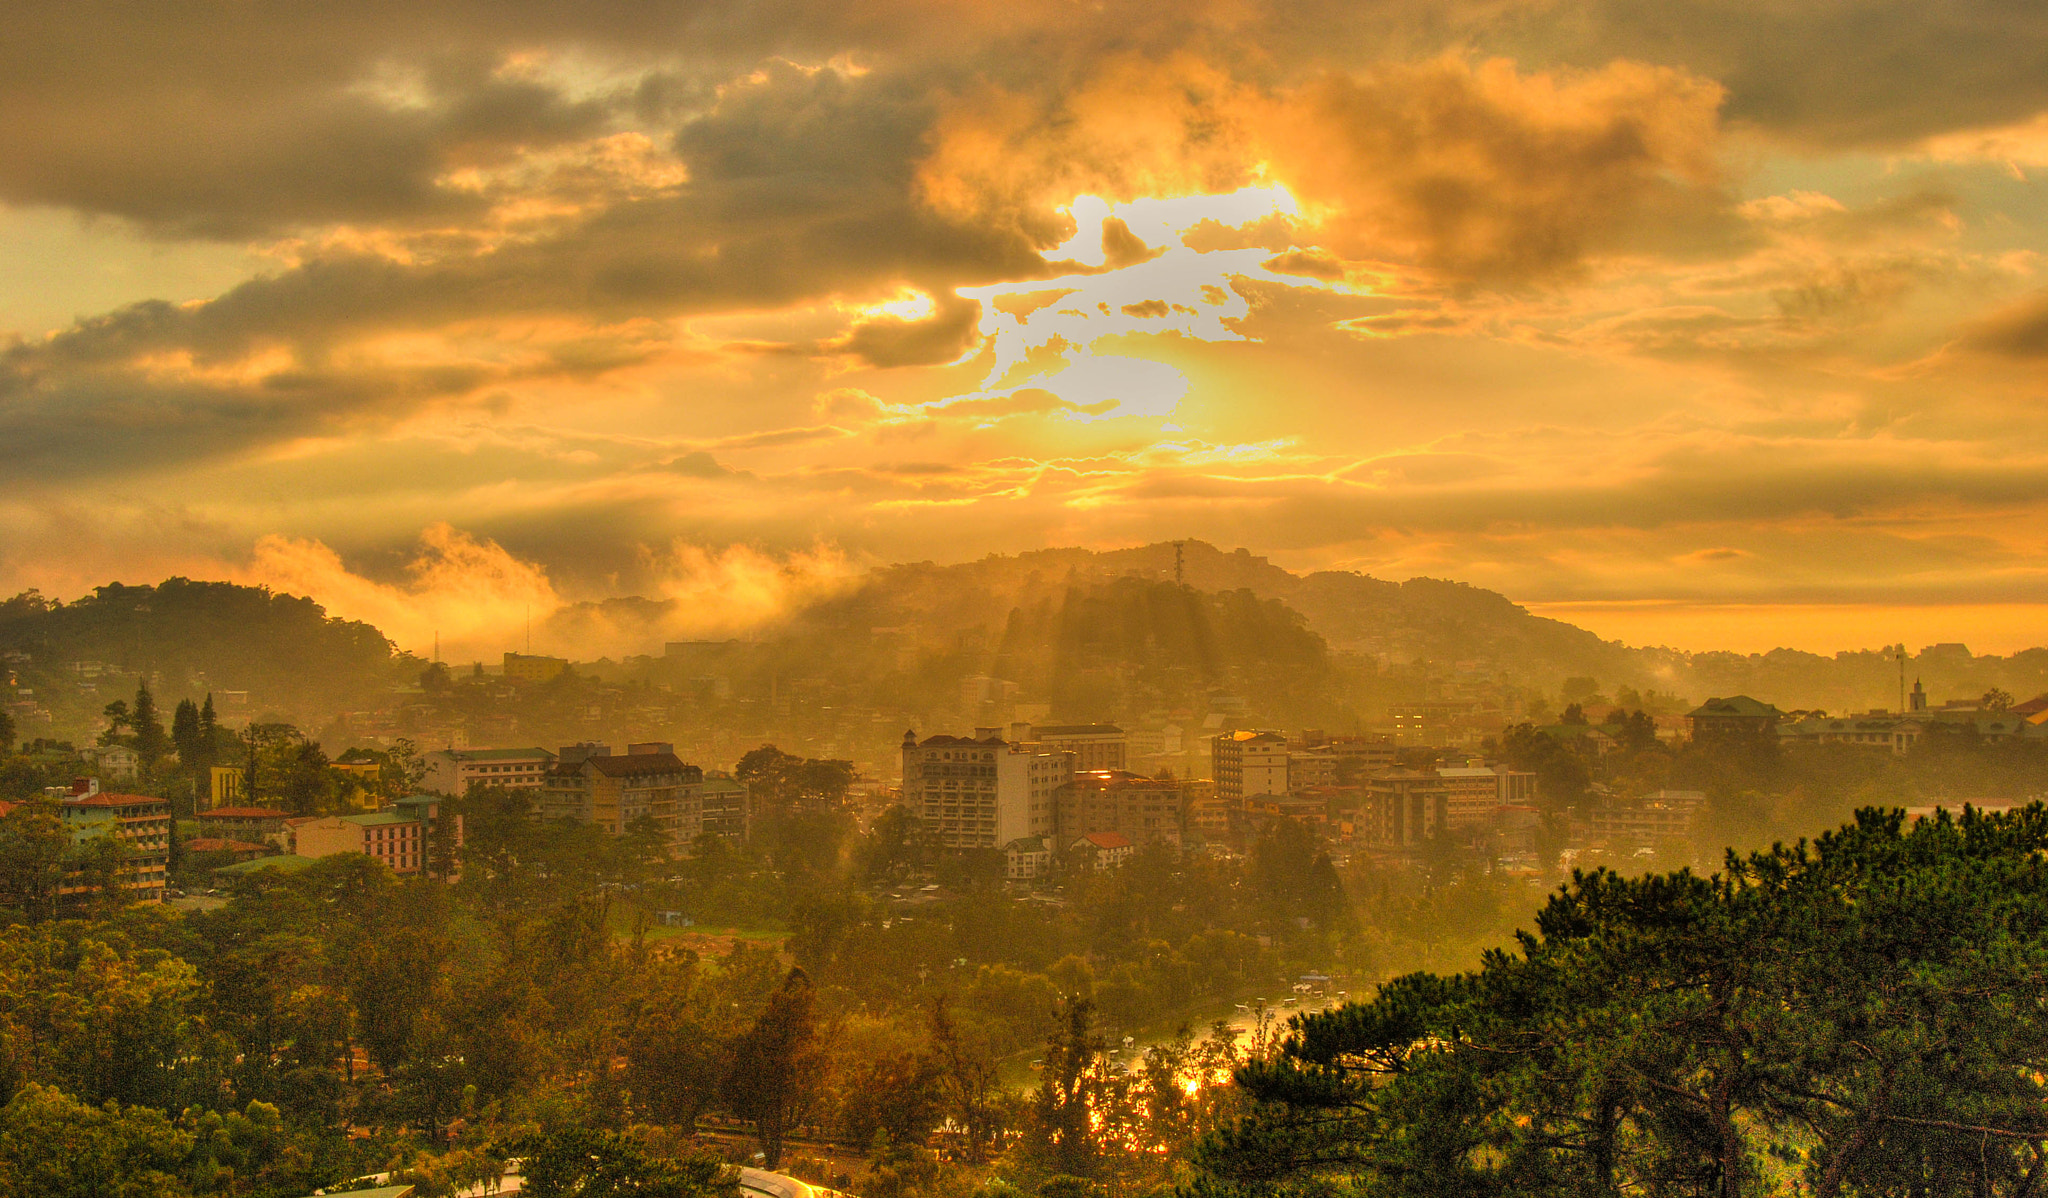 Photograph Heavenly Glory by Carl Taawan on 500px